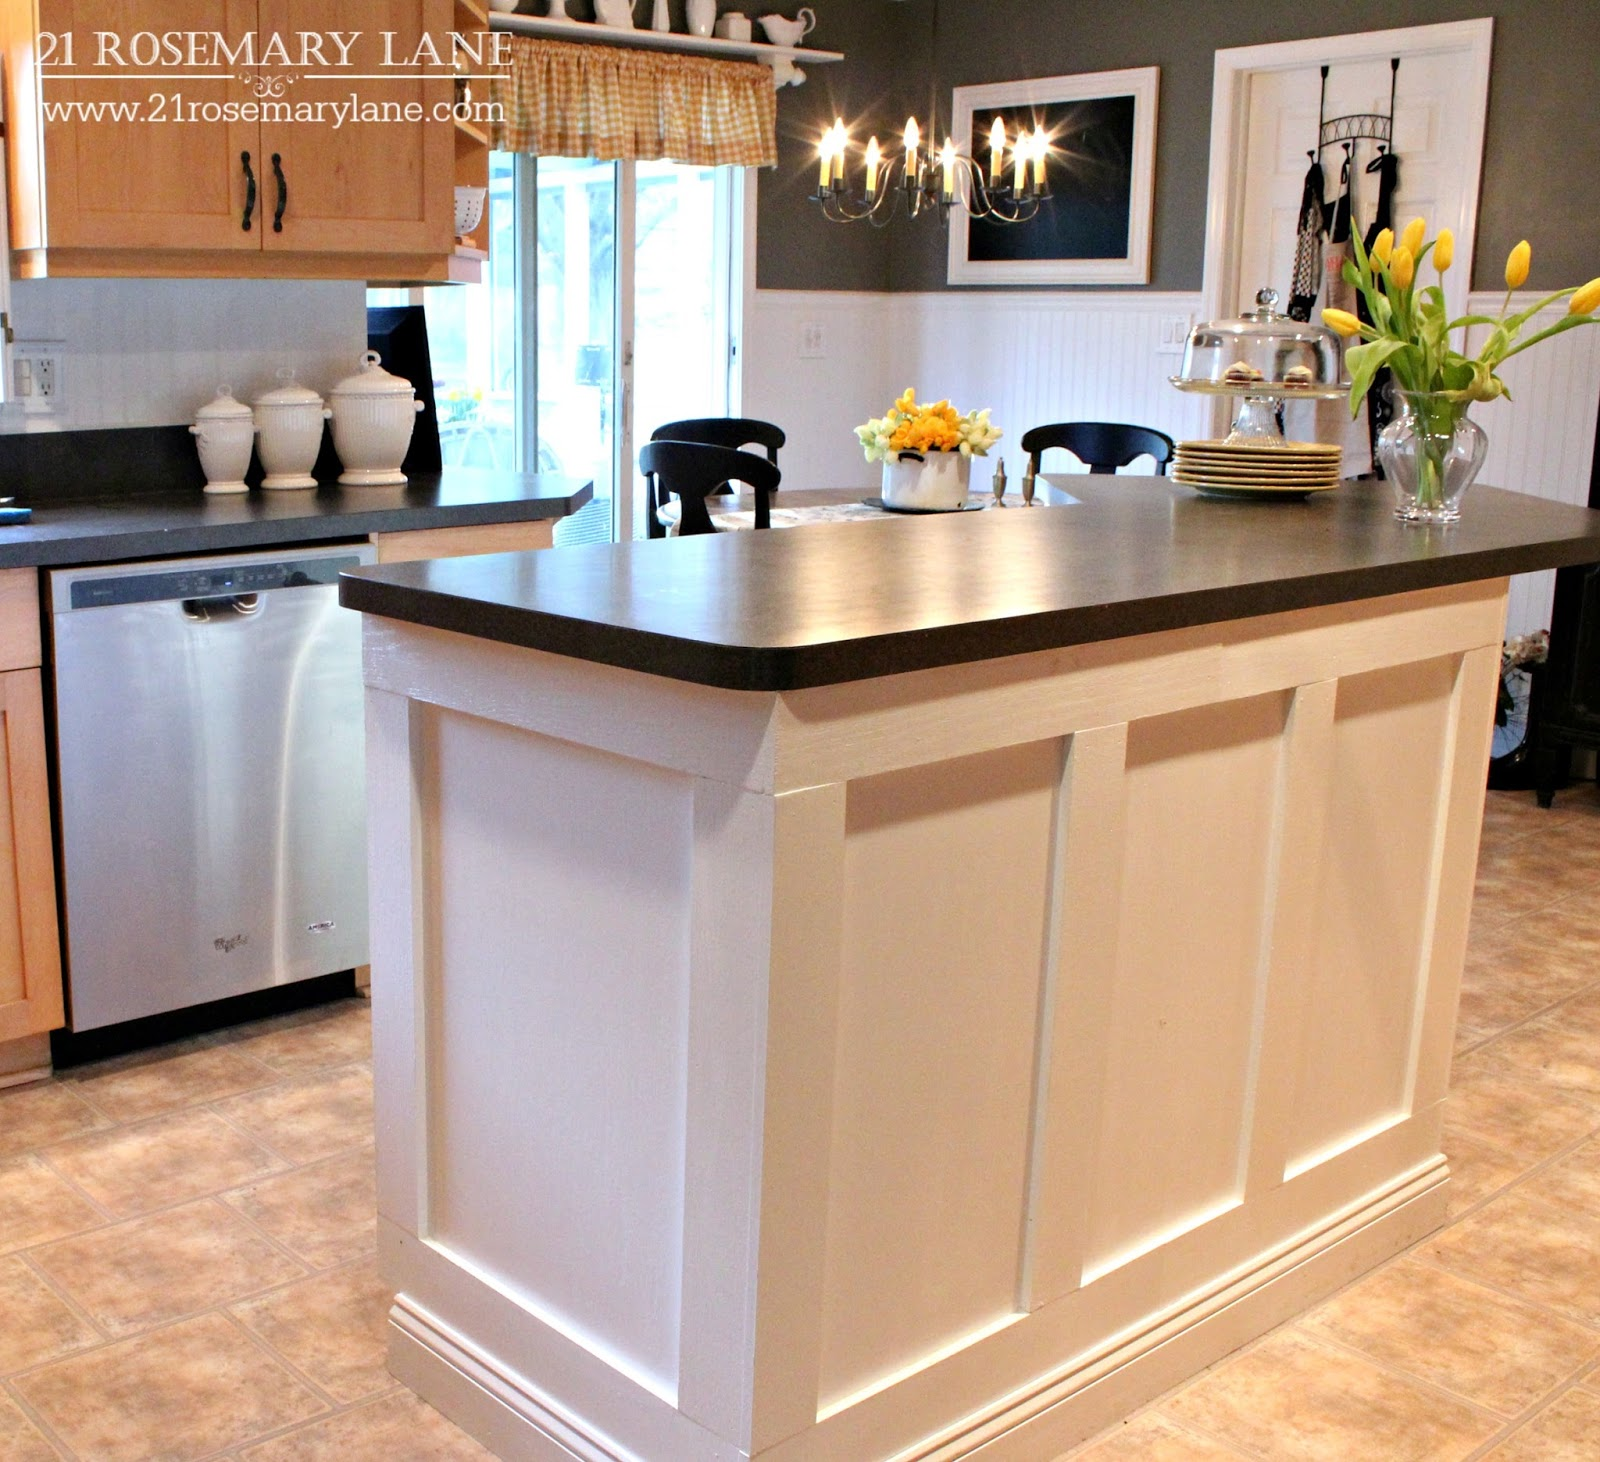 Kitchen Islands And: 21 Rosemary Lane: Board & Batten Kitchen Island Makeover